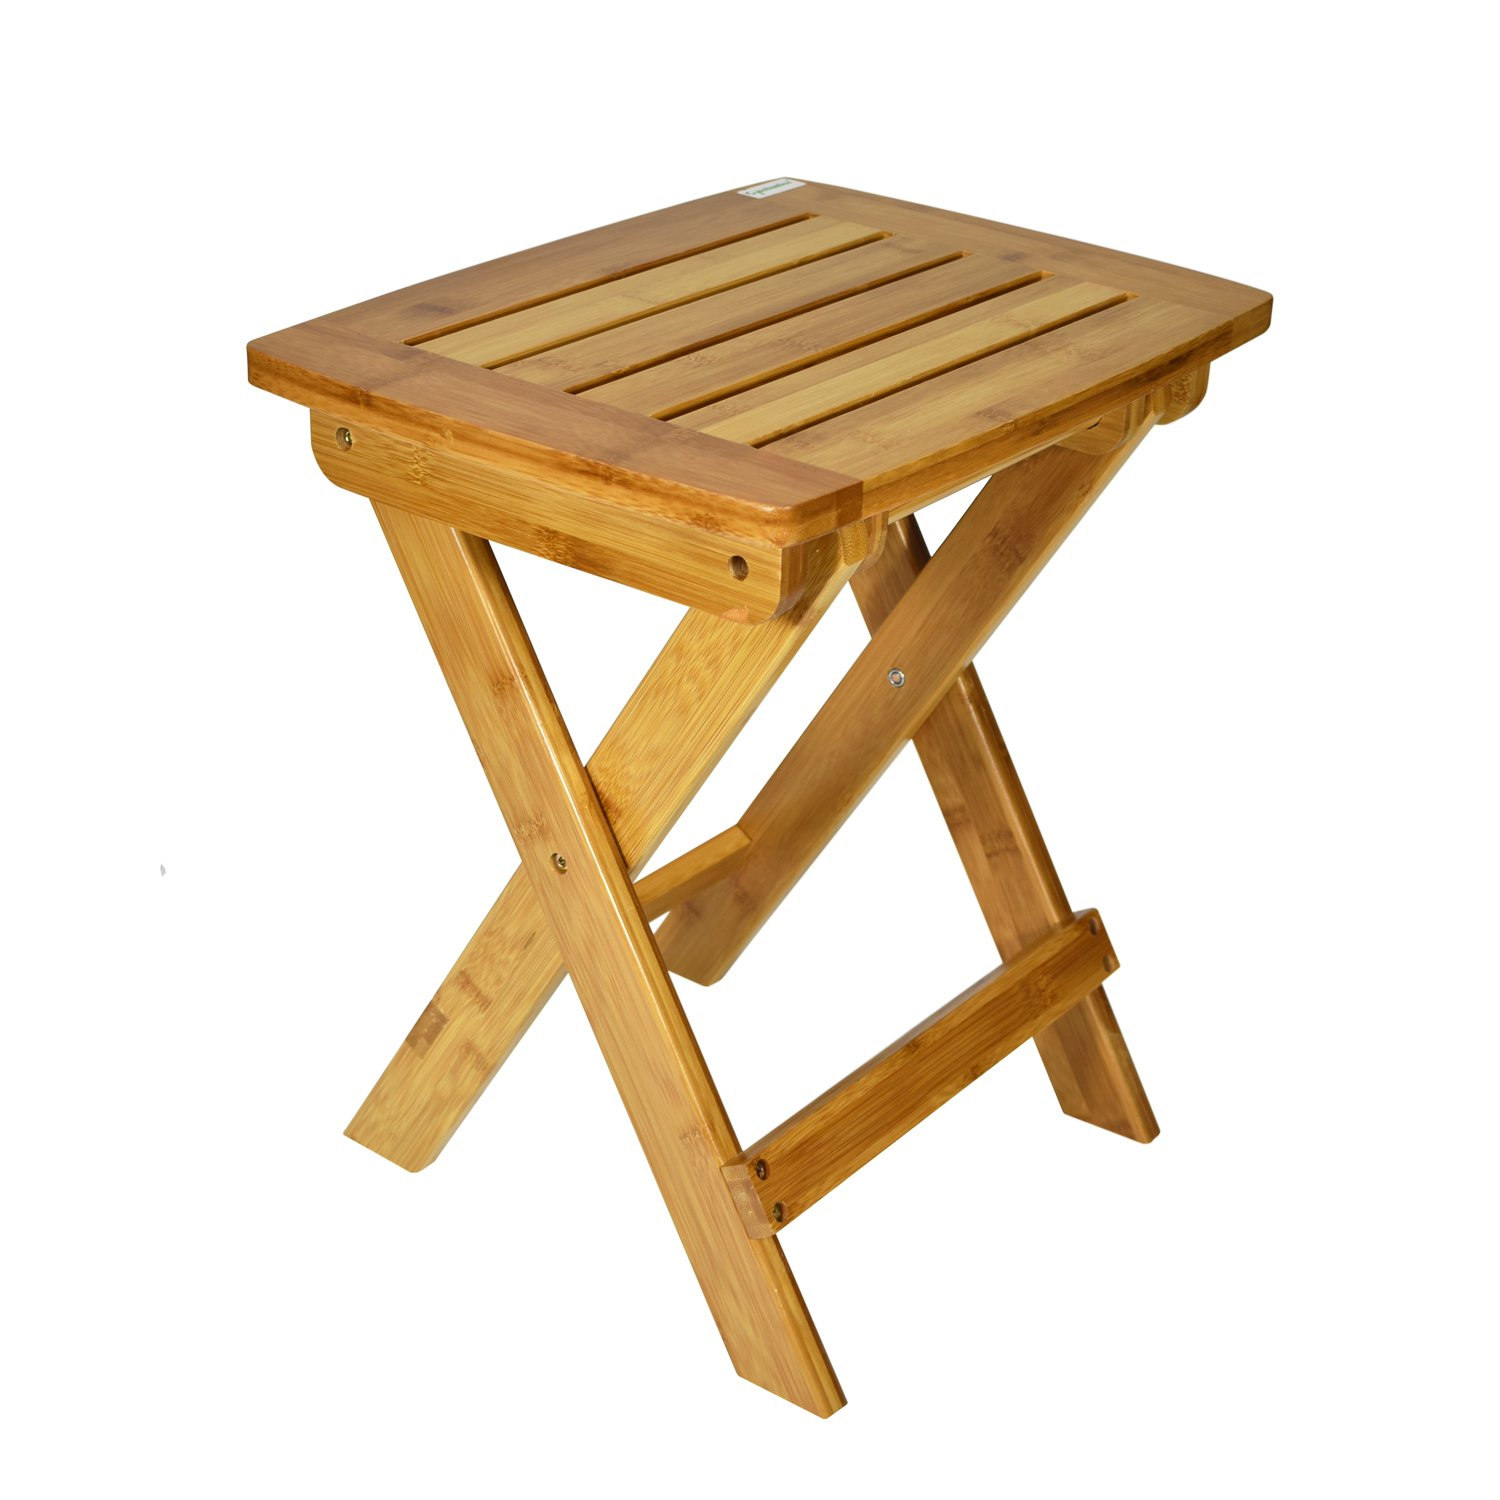 Cyanbamboo Multifunctional Bamboo Stool with Foldable Legs and Used for Picnic Fishing Bathroom Garden (Natural)